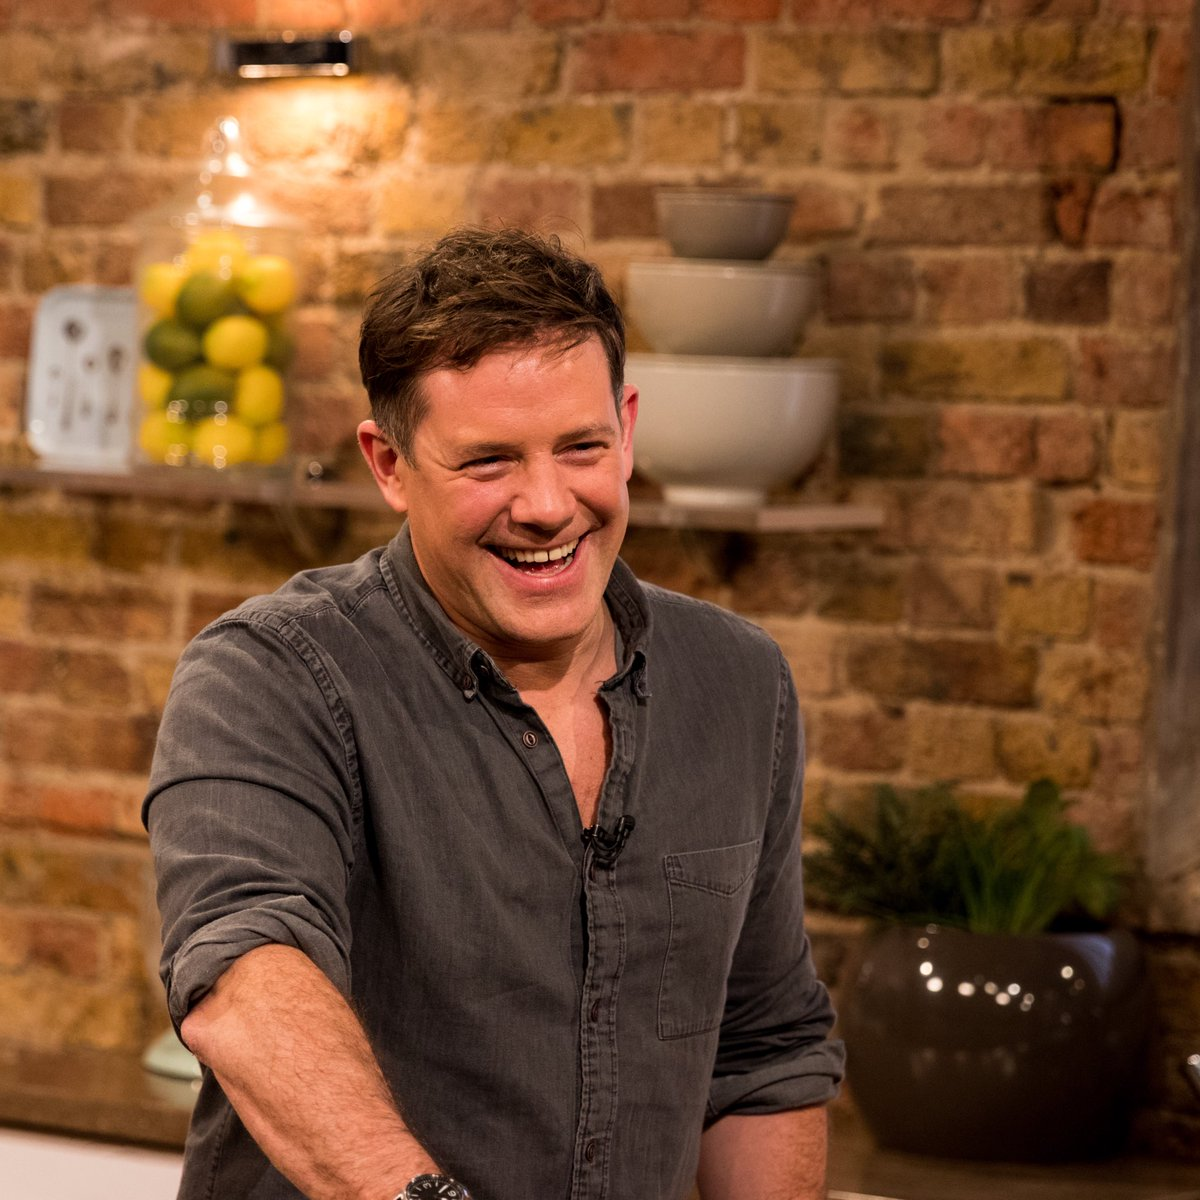 This time tomorrow morning...  Matt's joined for #SaturdayKitchen by chef Andi Oliver, drinks expert Helen McGinn and special guest Dr Rupy Aujla!  Live on @BBCOne at 10am! https://t.co/yDuRdRPnwZ